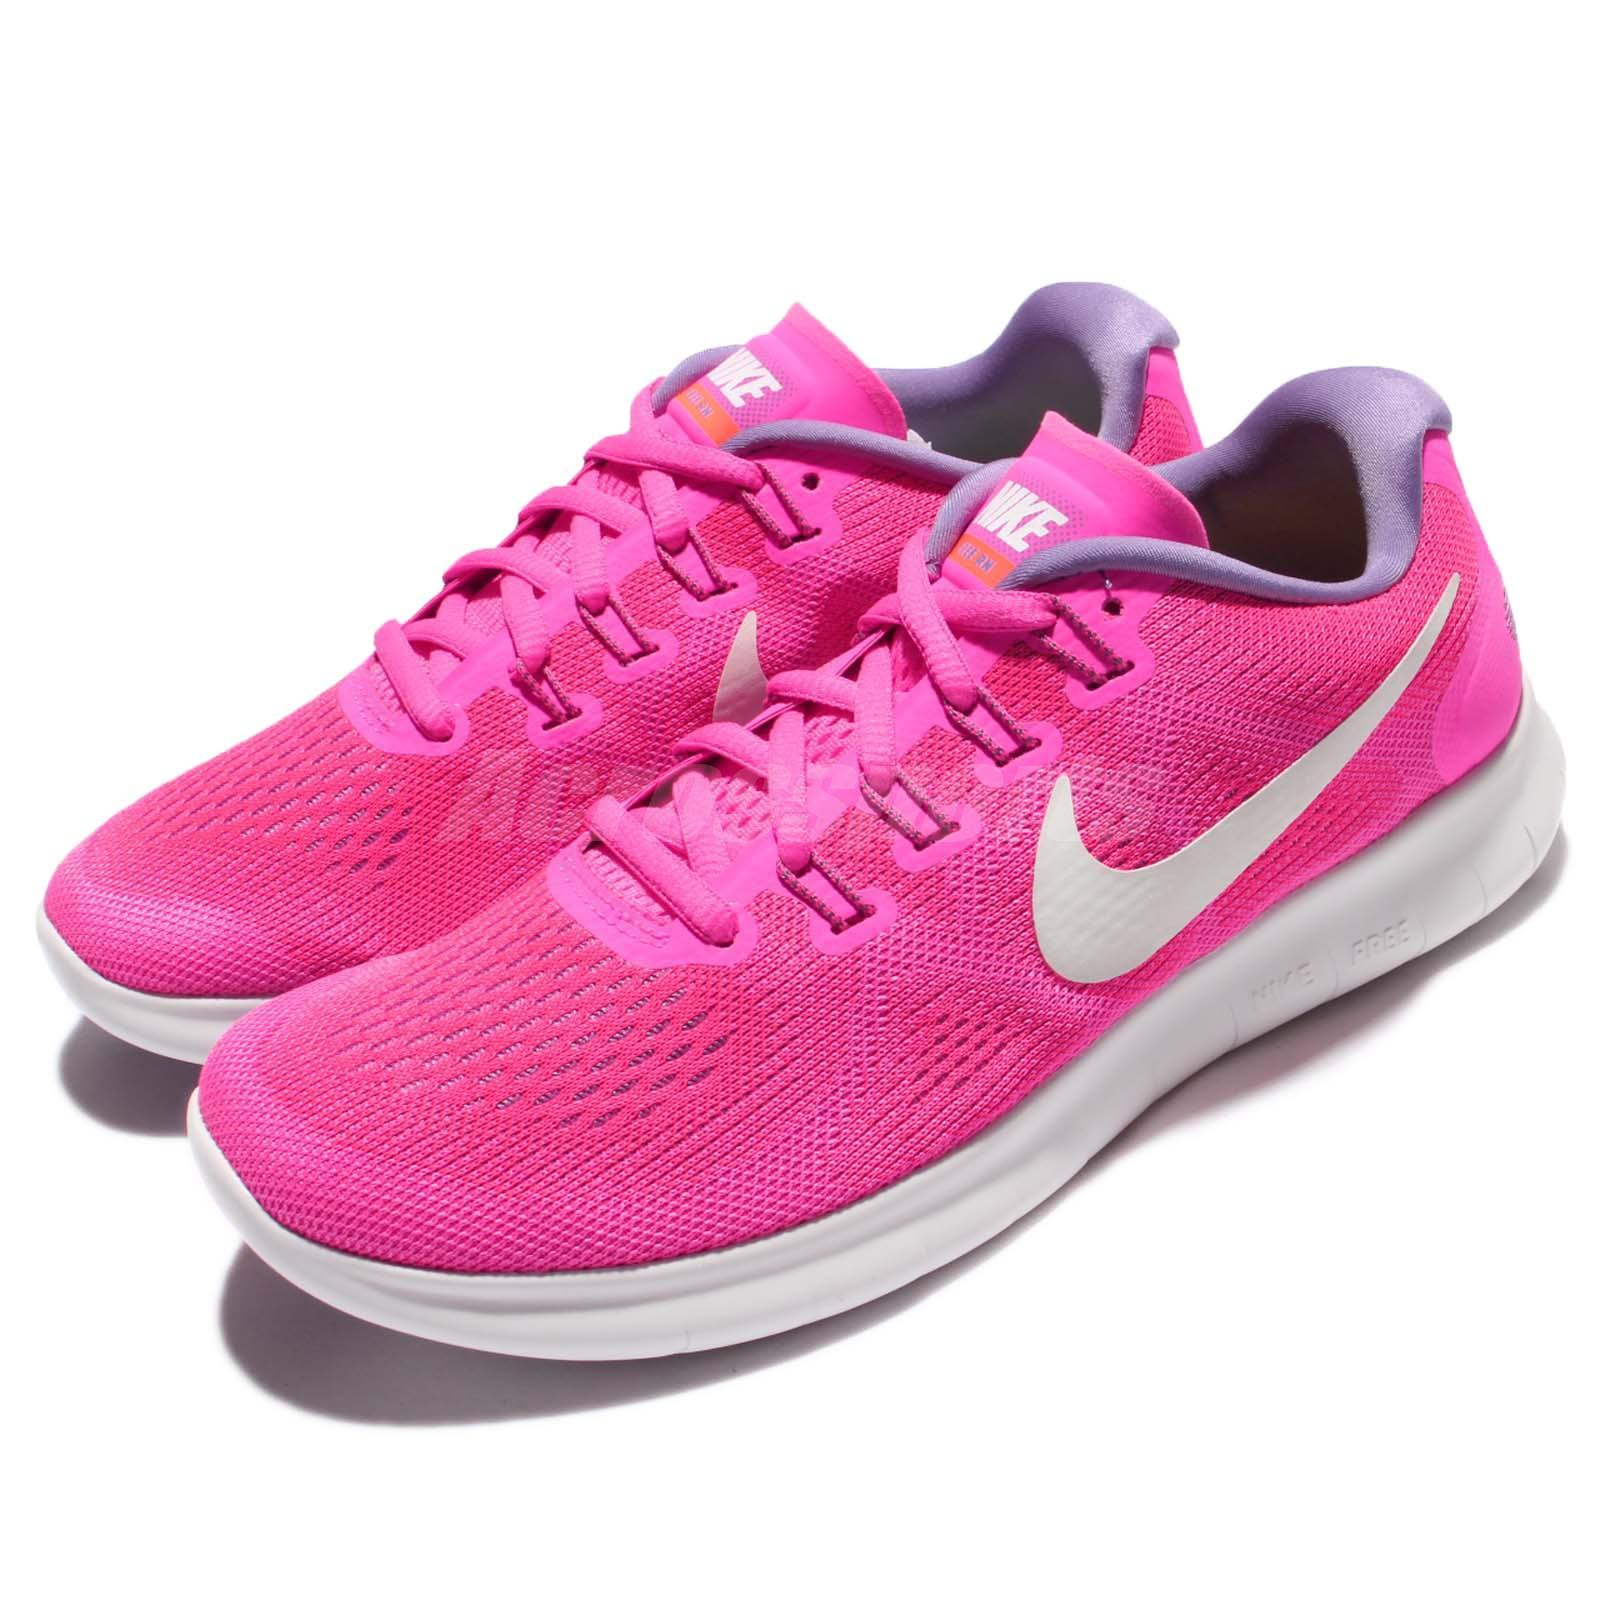 5027a425287f6c Details about Wmns Nike Free RN 2017 Pink White Women Running Shoes  Sneakers 880840-601